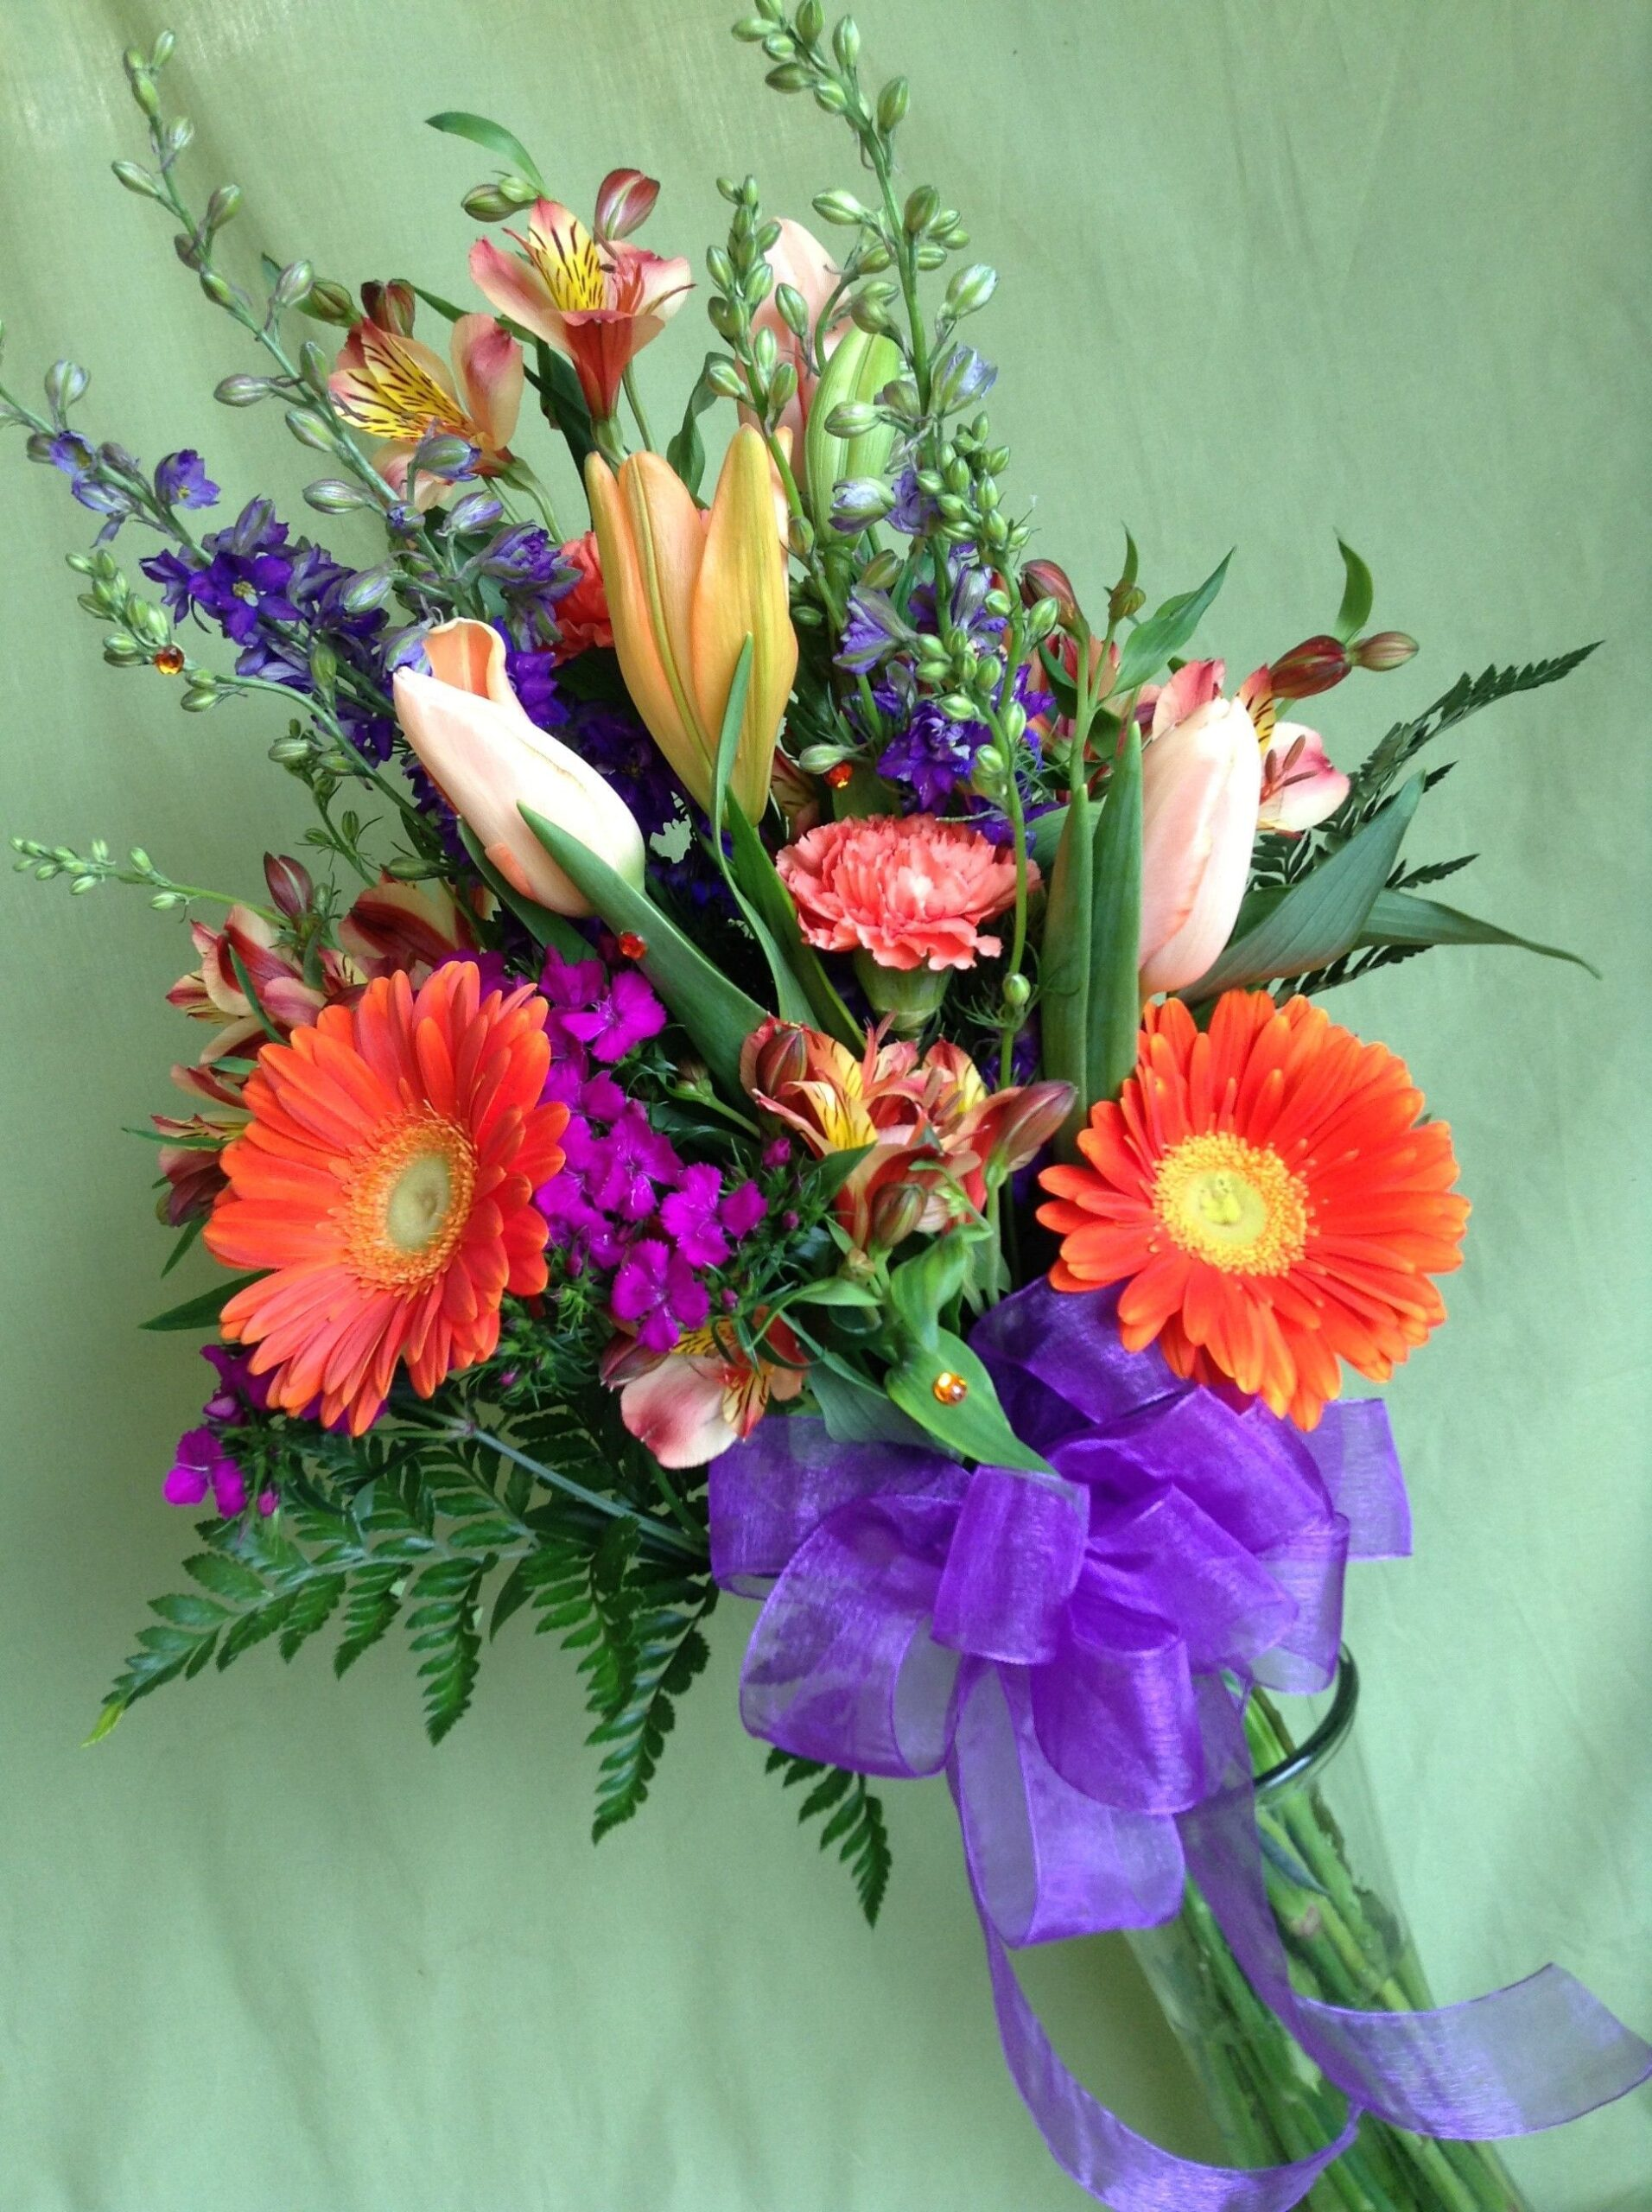 choose arm sheaf wedding bouquets for your wedding 4 scaled - Choose Arm sheaf wedding bouquets for Your Wedding